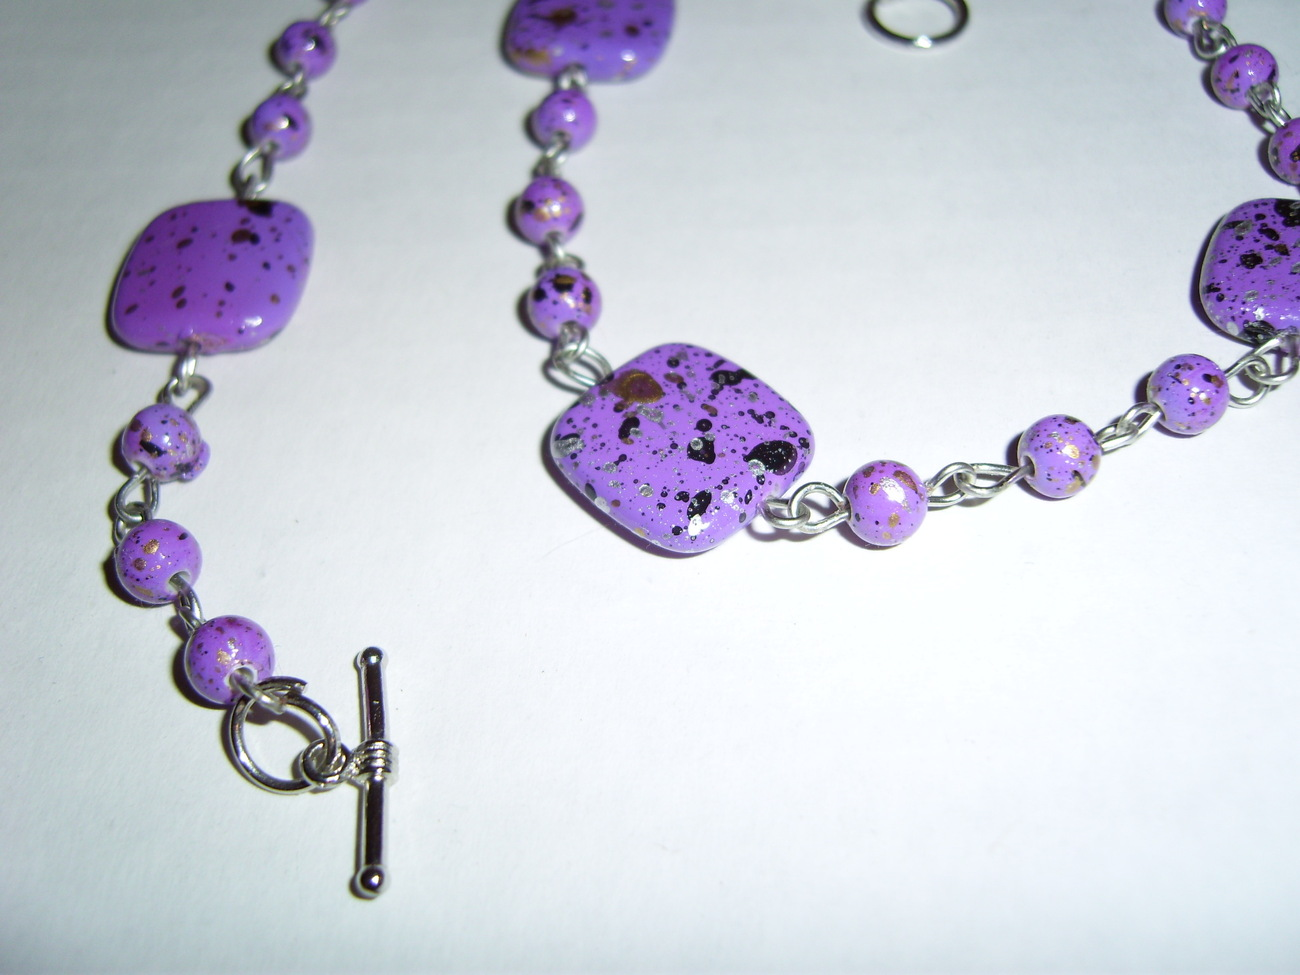 Handmade purple speckle beaded necklace